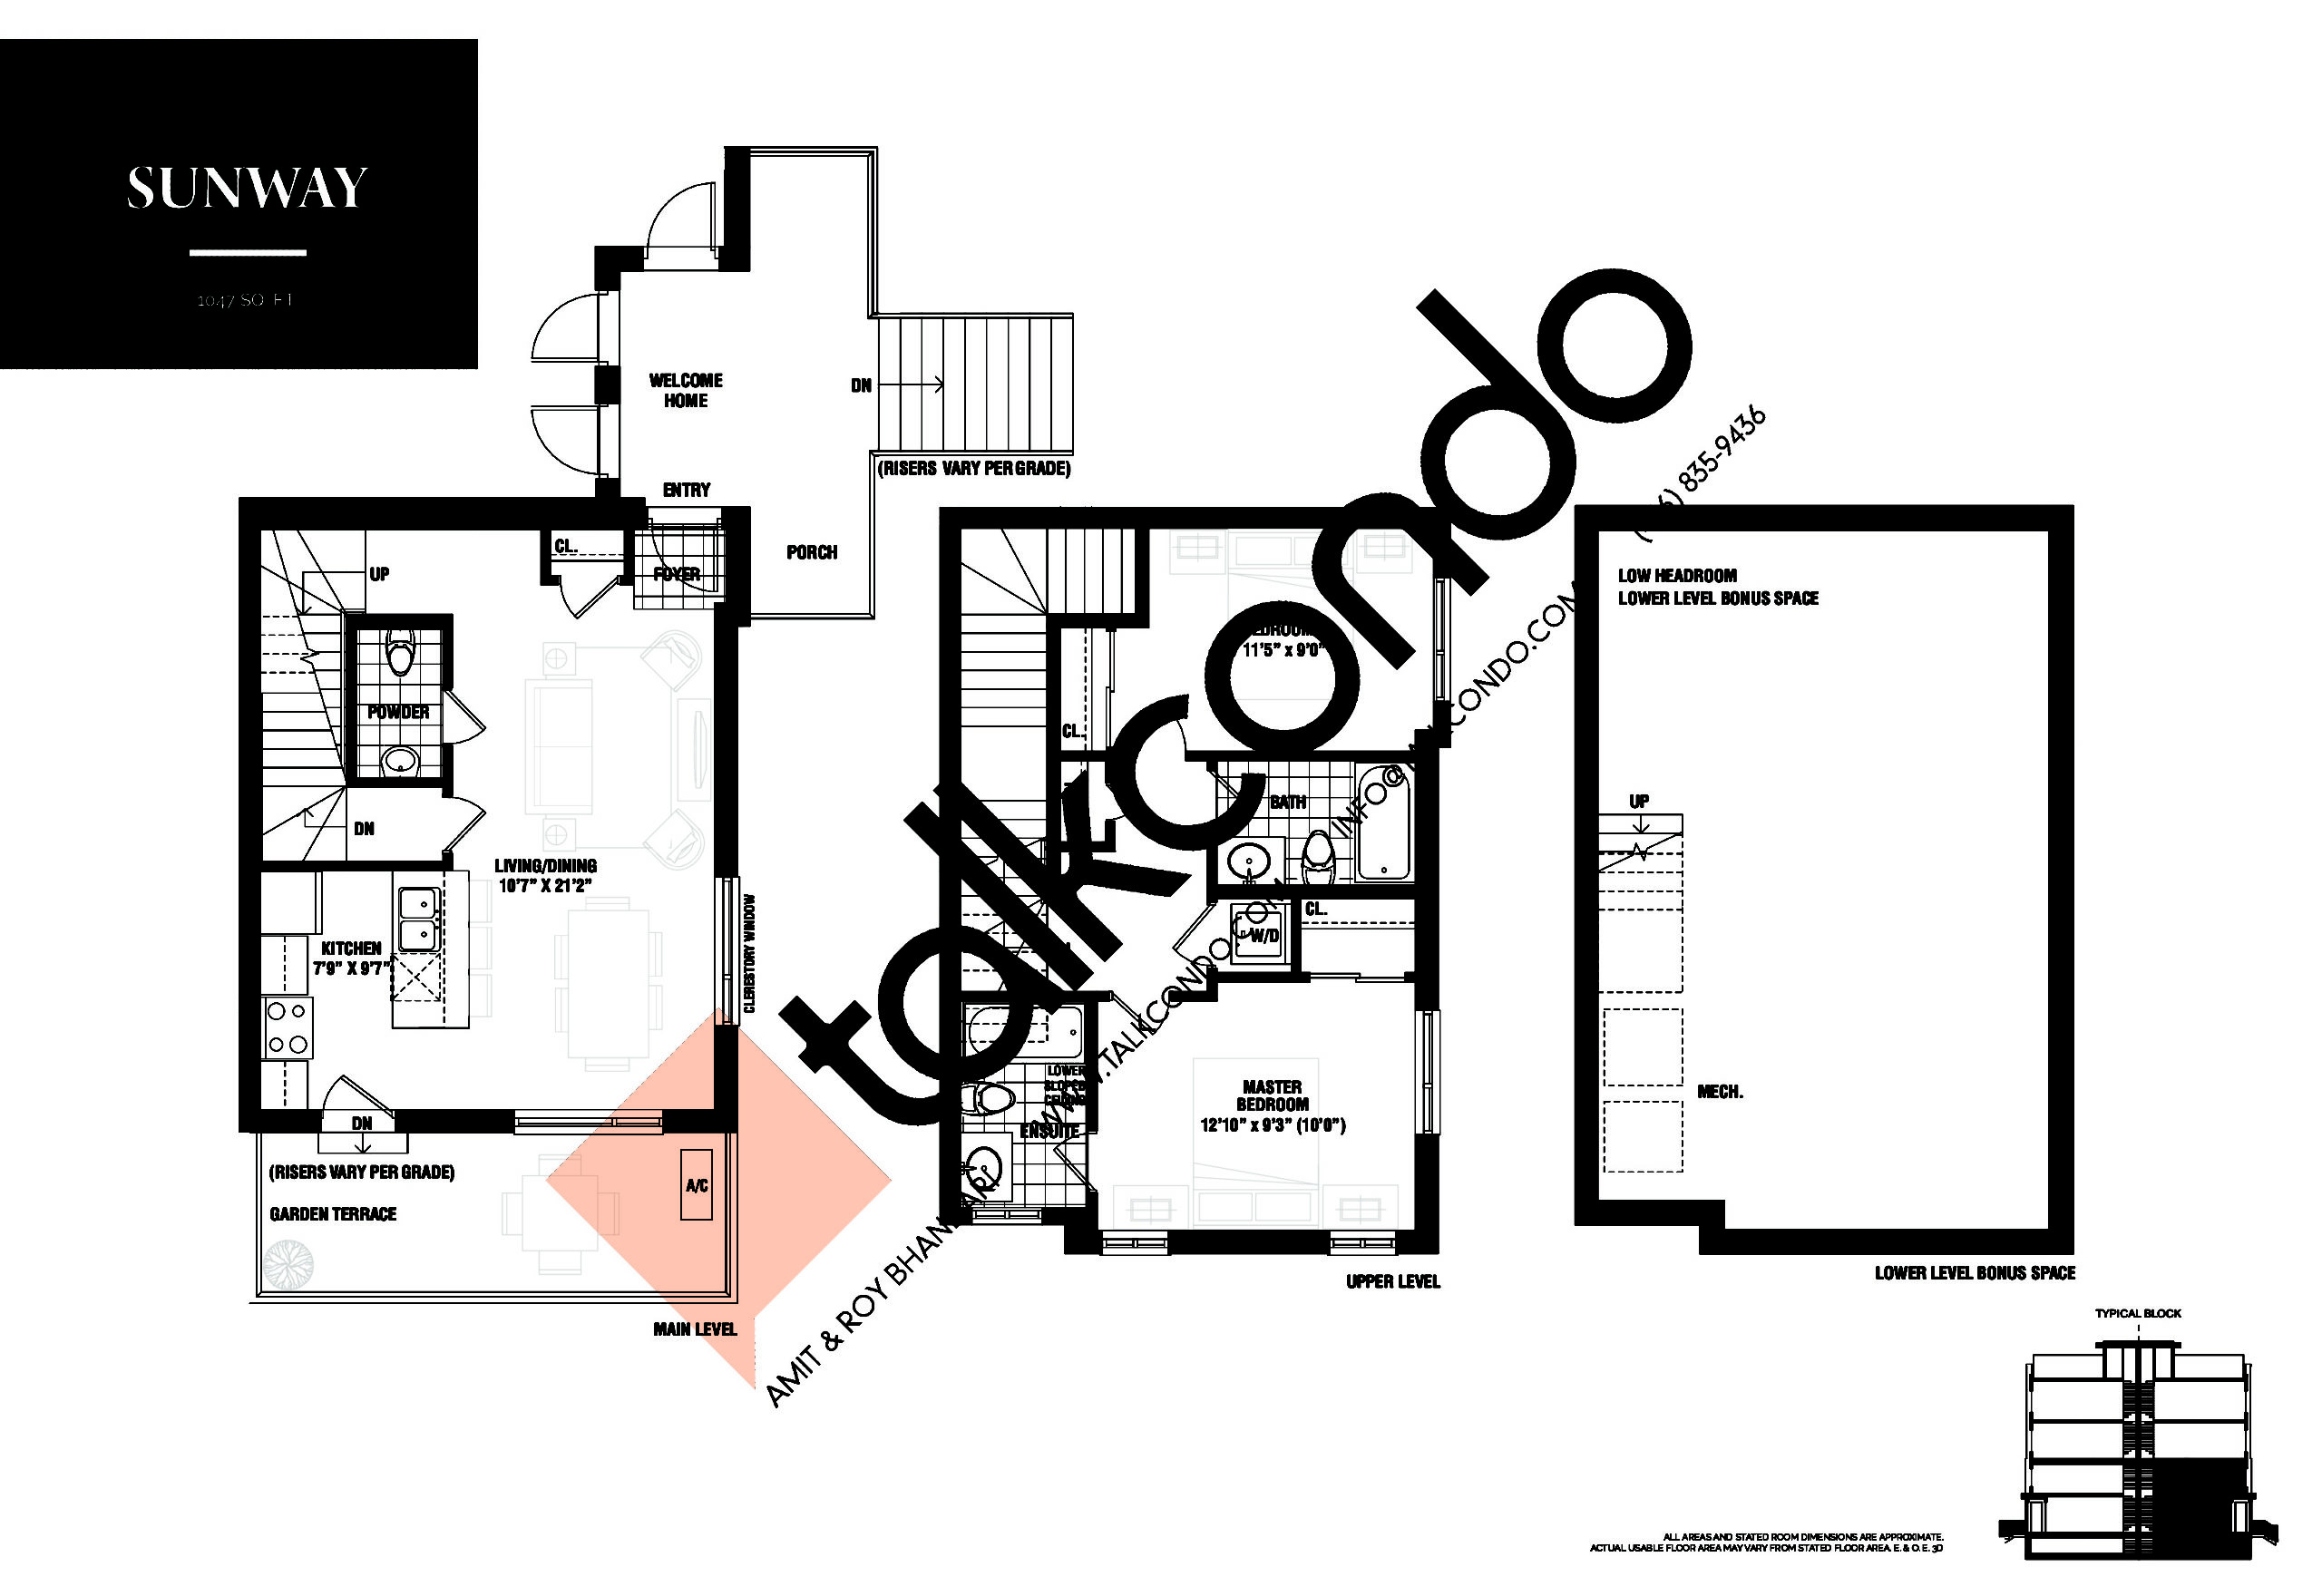 Sunway Floor Plan at The Way Urban Towns Phase 2 - 1047 sq.ft